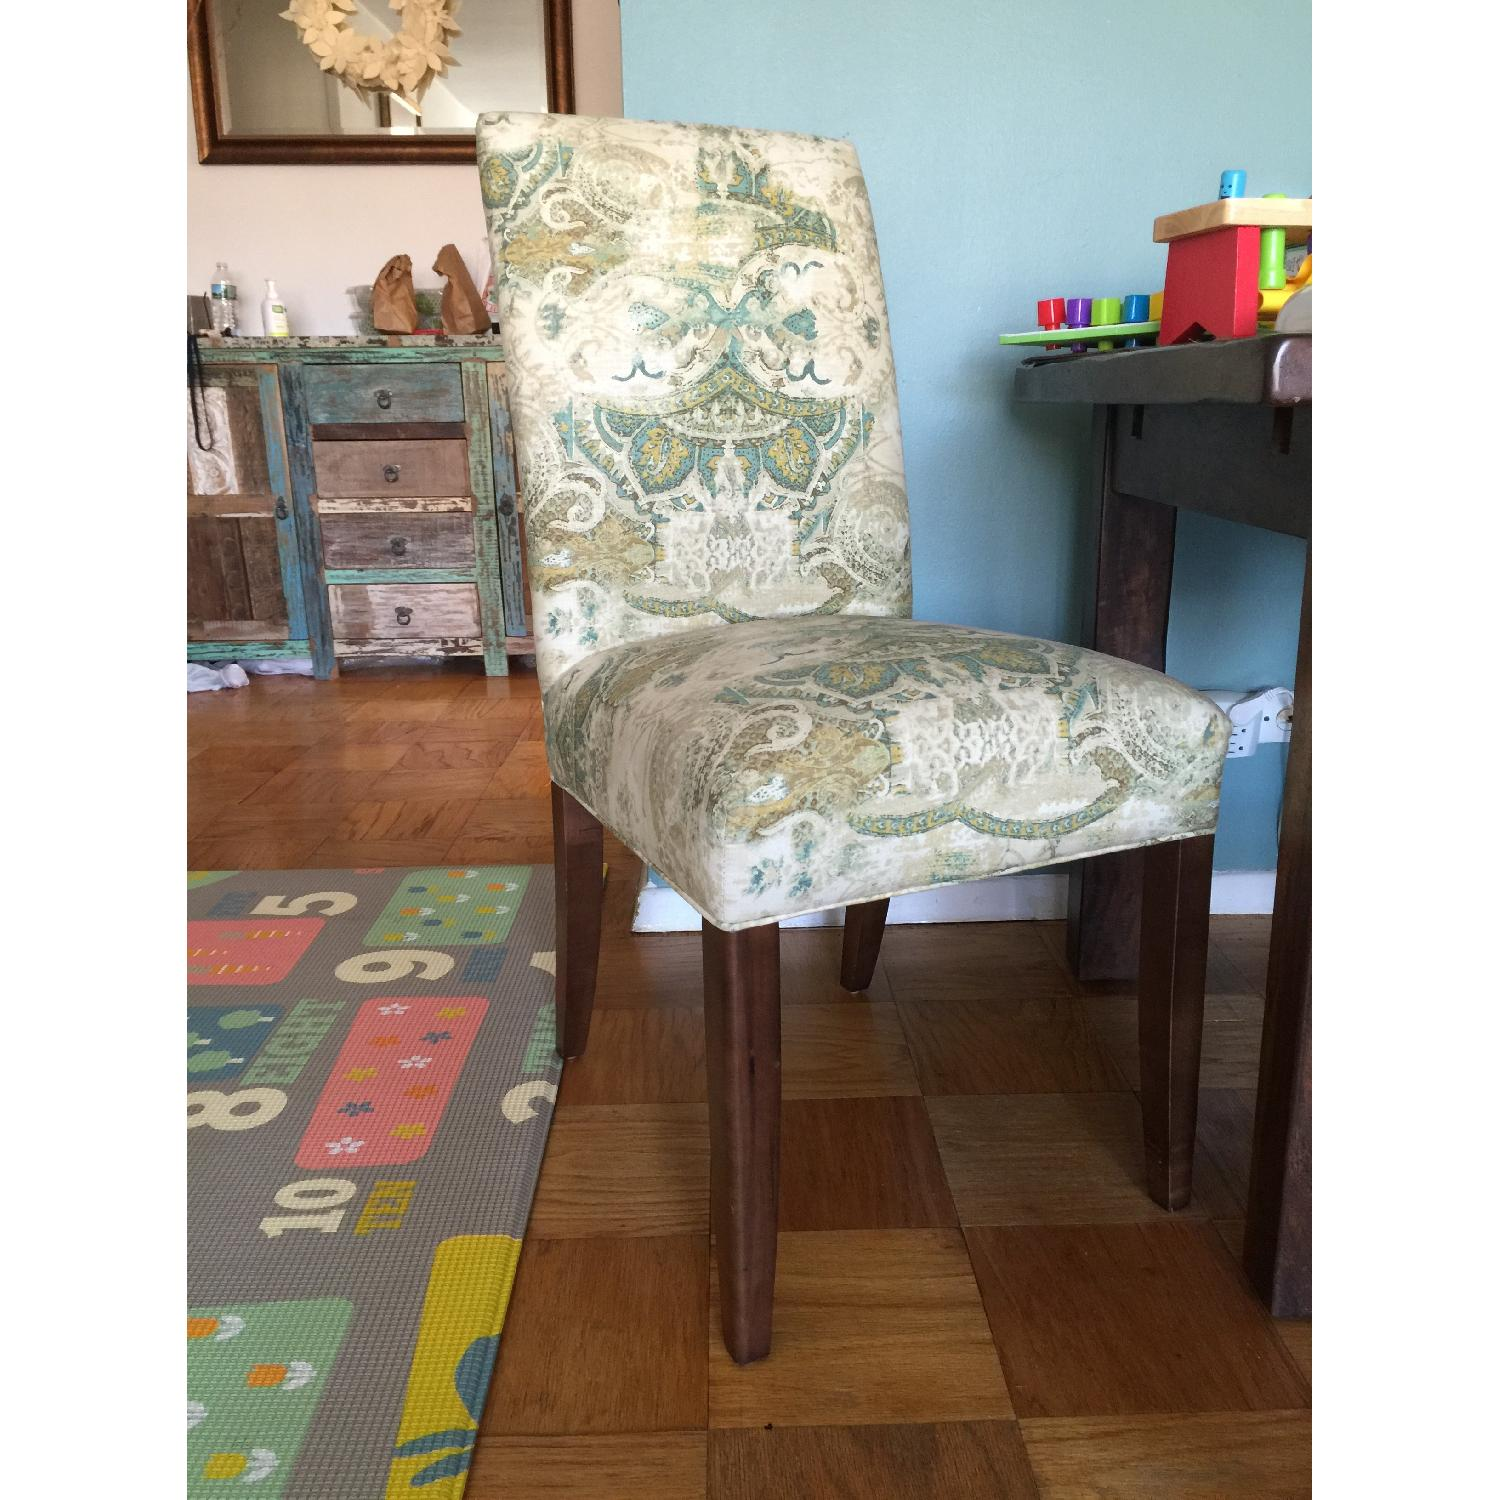 ABC Carpet and Home High Back Upholstered Dining Chairs - image-1